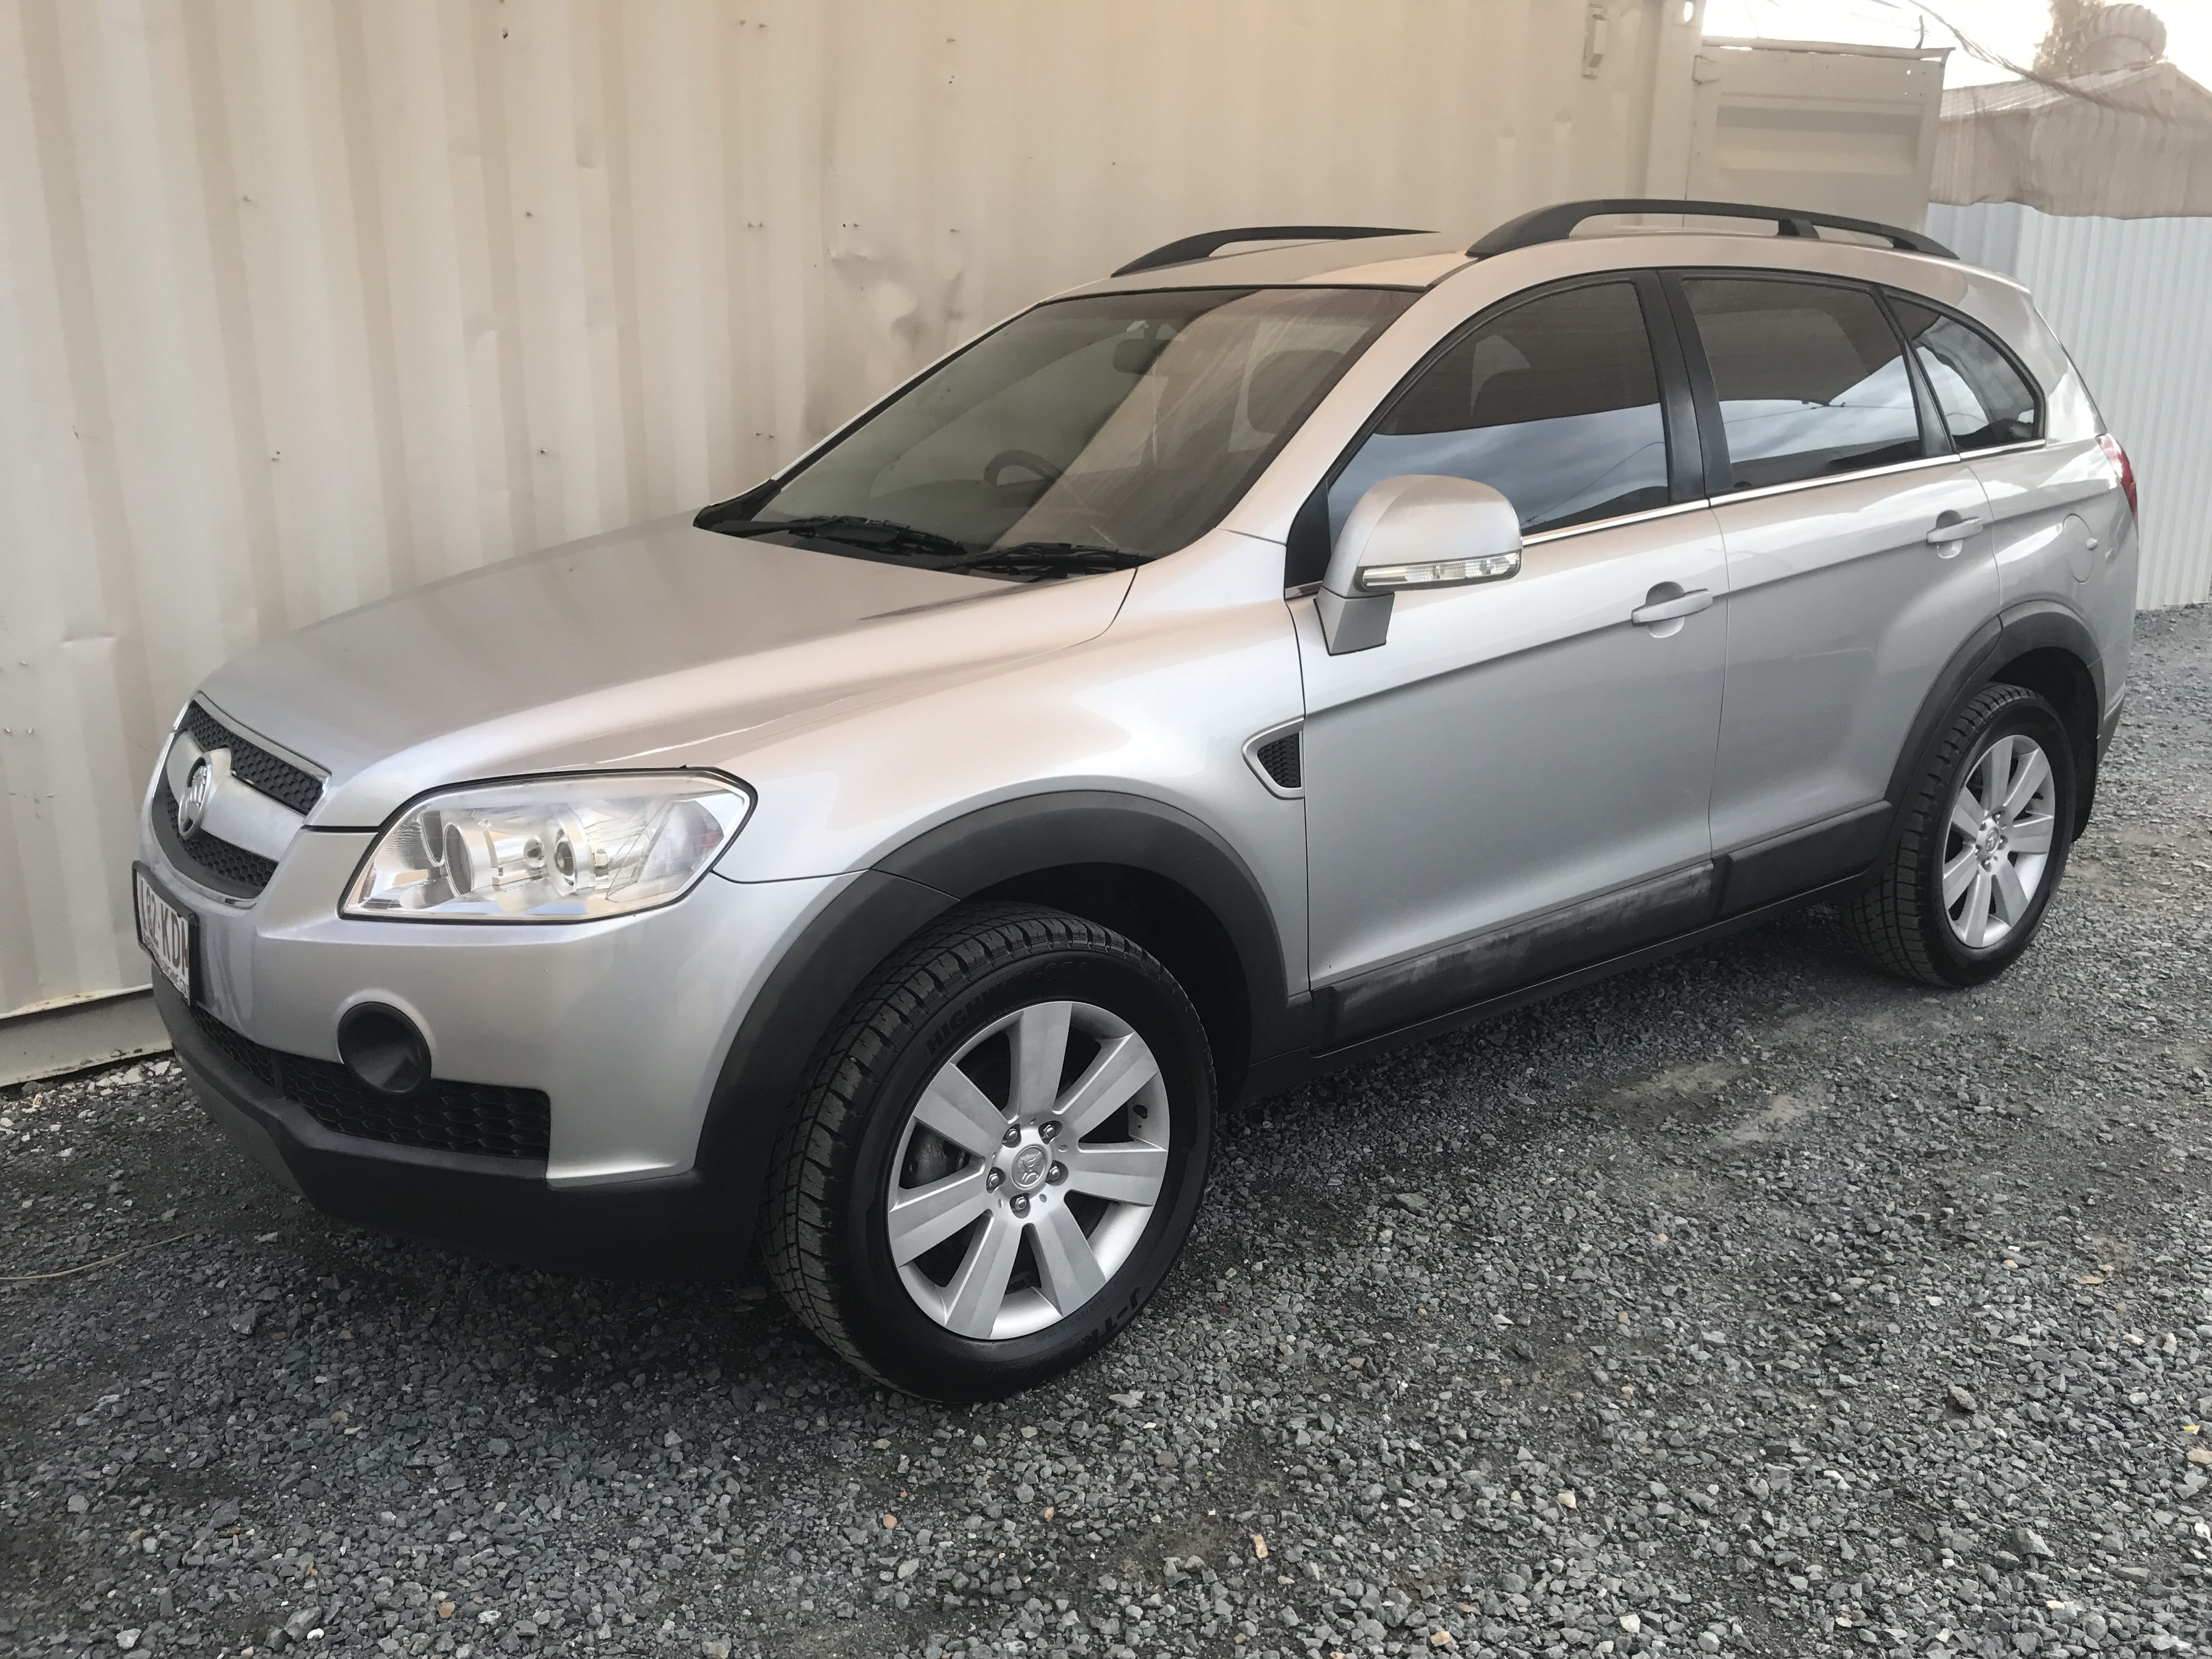 sold automatic 7 seater 4x4 suv wagon holden captiva 2007 used vehicle sales. Black Bedroom Furniture Sets. Home Design Ideas